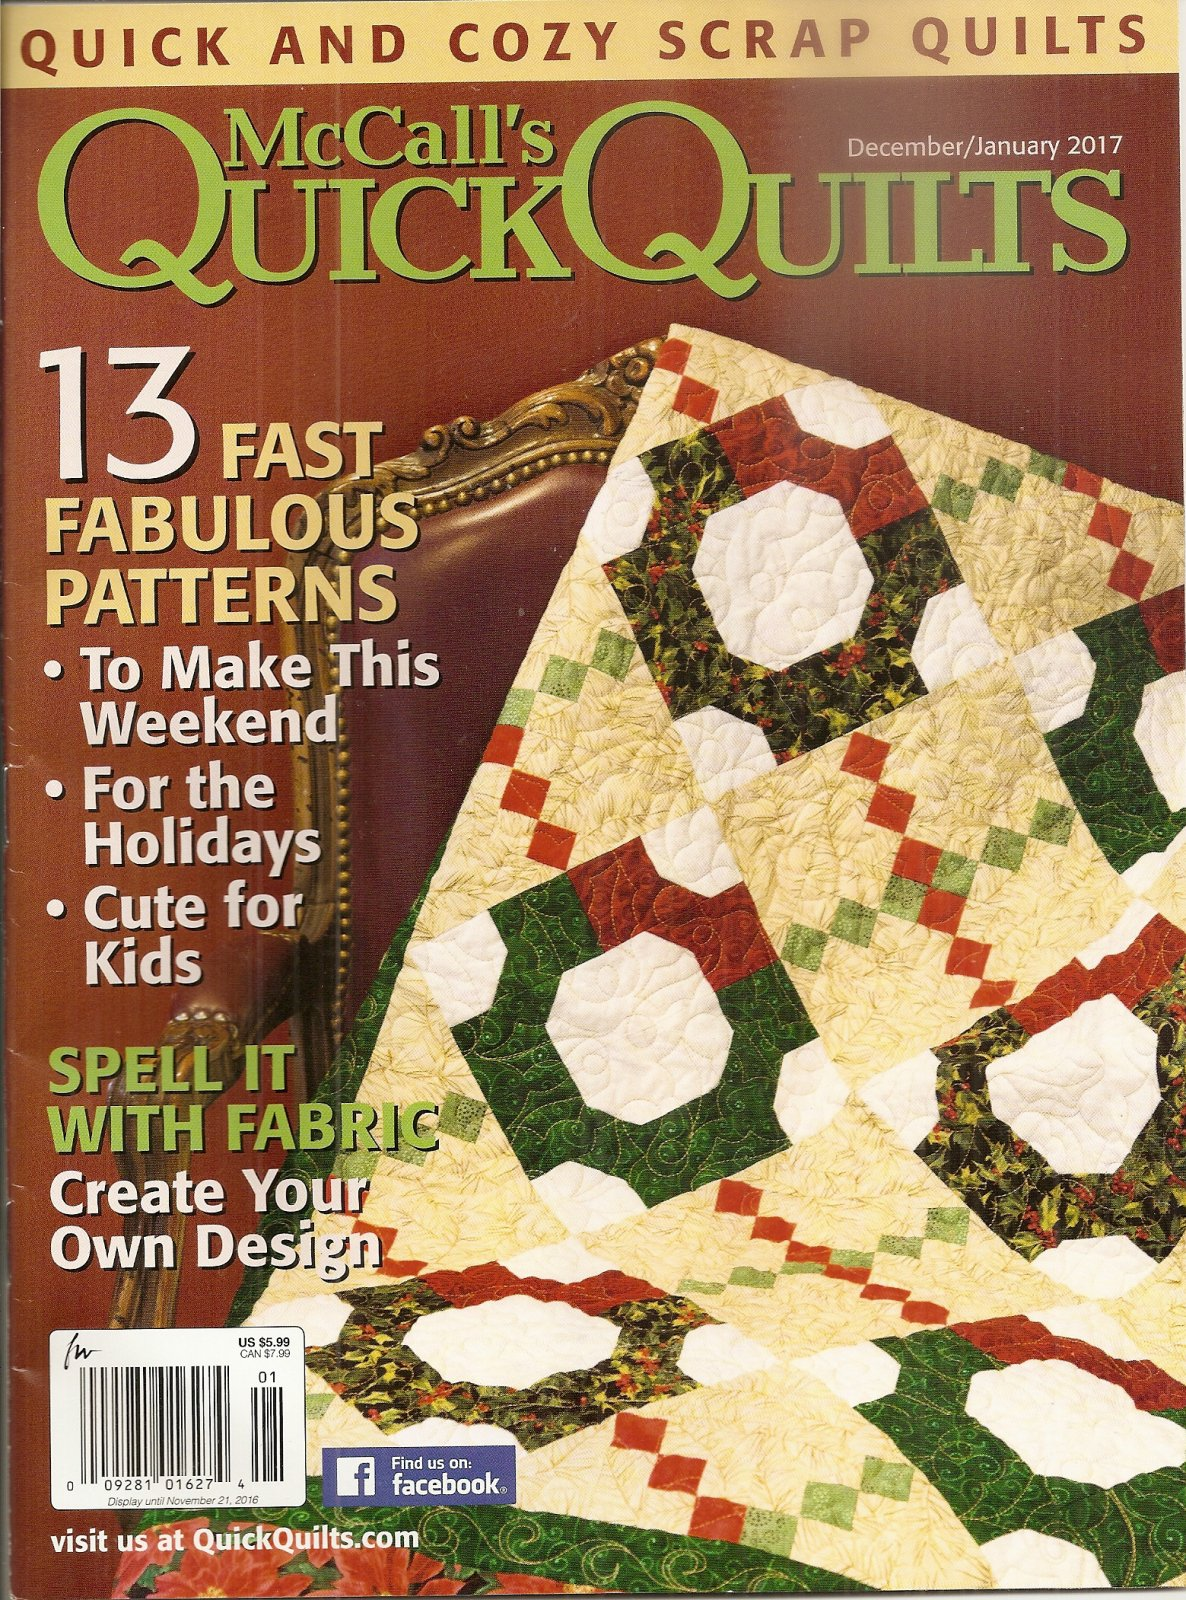 McCall's Quick Quilts December/January 2017